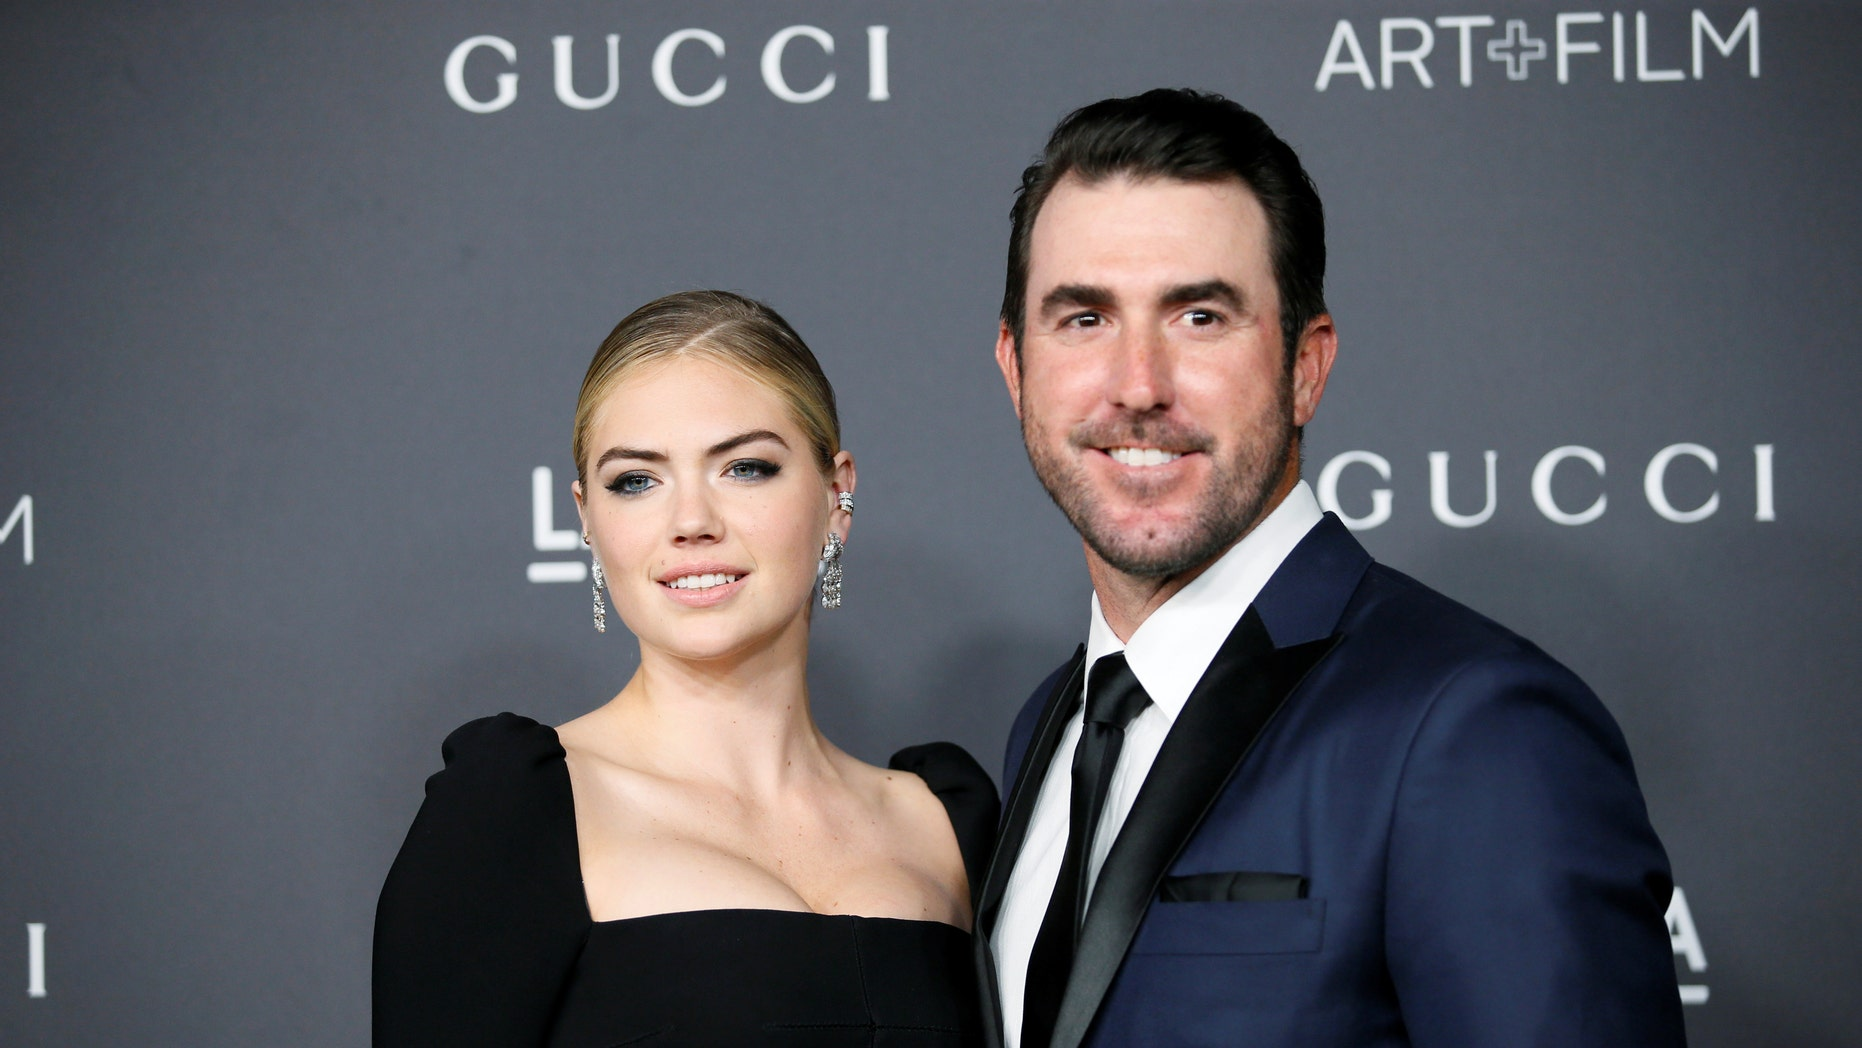 Model Kate Upton and Major League Baseball pitcher Justin Verlander pose at the Los Angeles County Museum of Art+Film Gala in Los Angeles, Oct. 29, 2016.